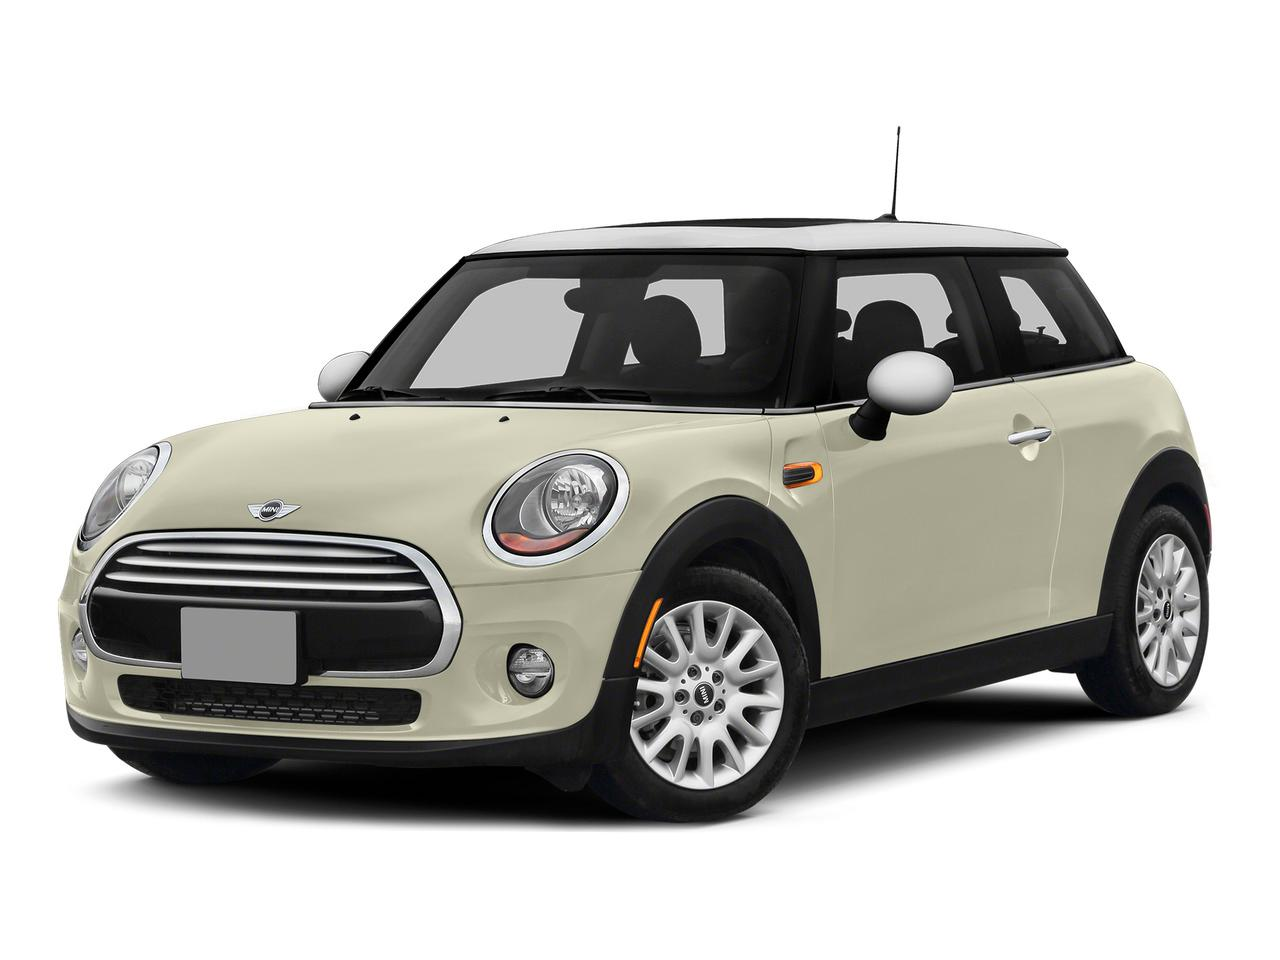 2015 MINI Cooper S Hardtop Vehicle Photo in Manassas, VA 20109